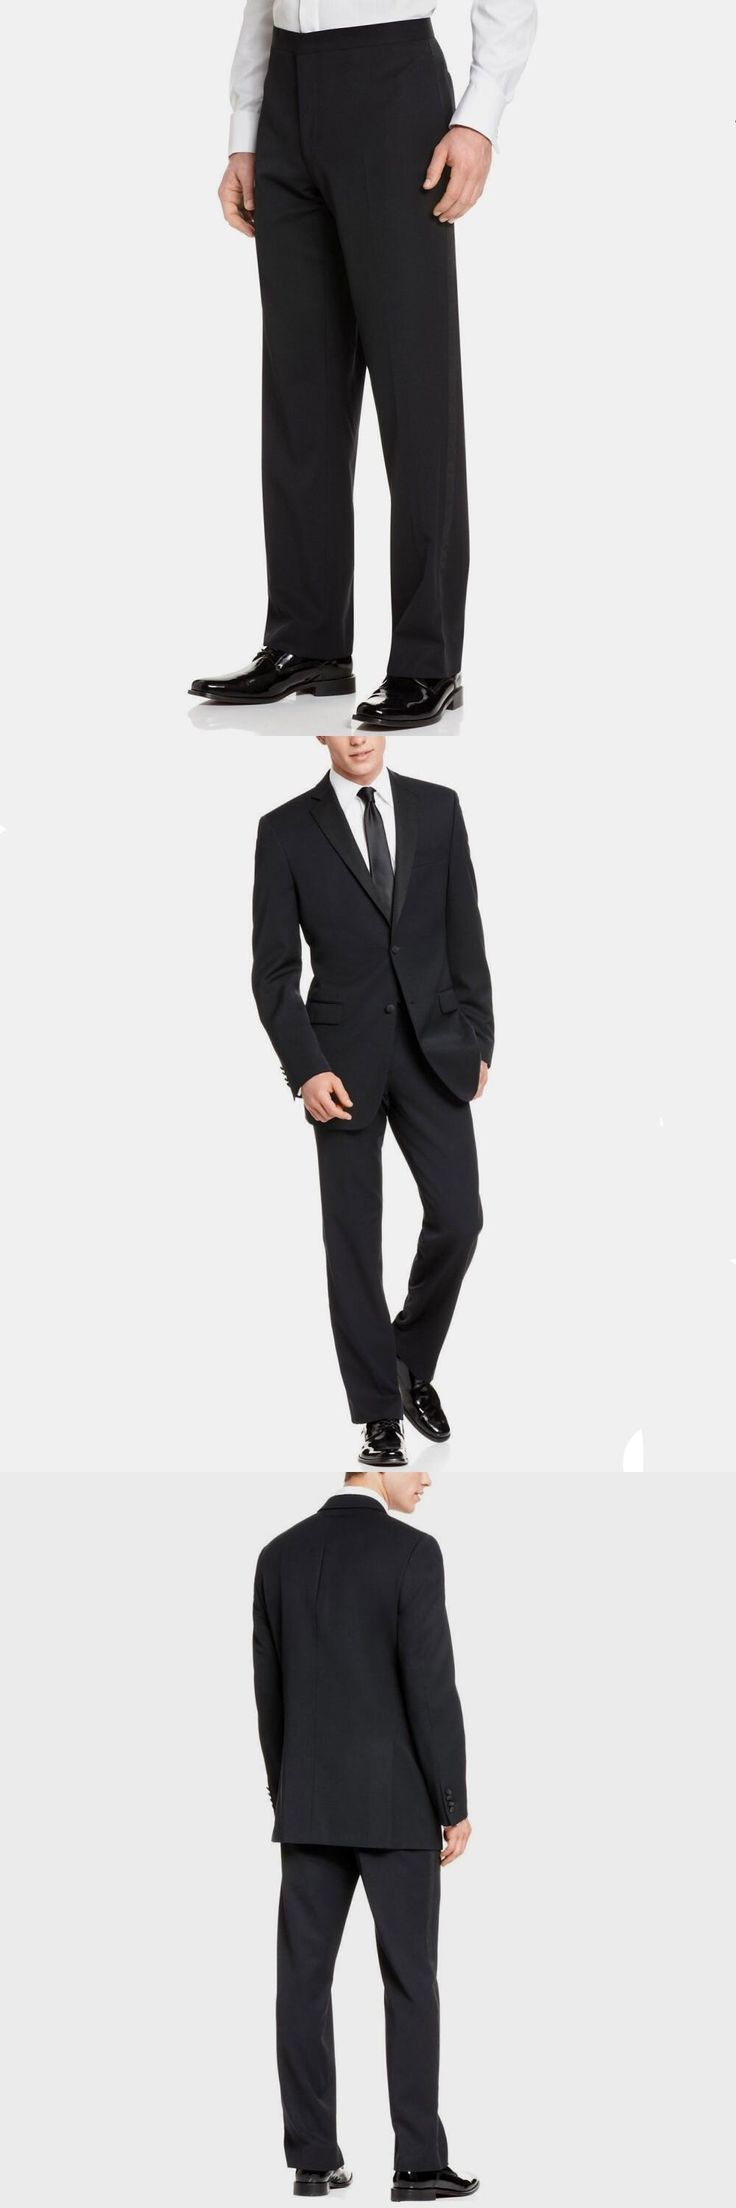 new suit Slim Fit Tuxedo Groom Handsome Tuxedos Wedding Suits For Man Two Buttons Royal black Celebrity Groom Suit (jacket+pant)